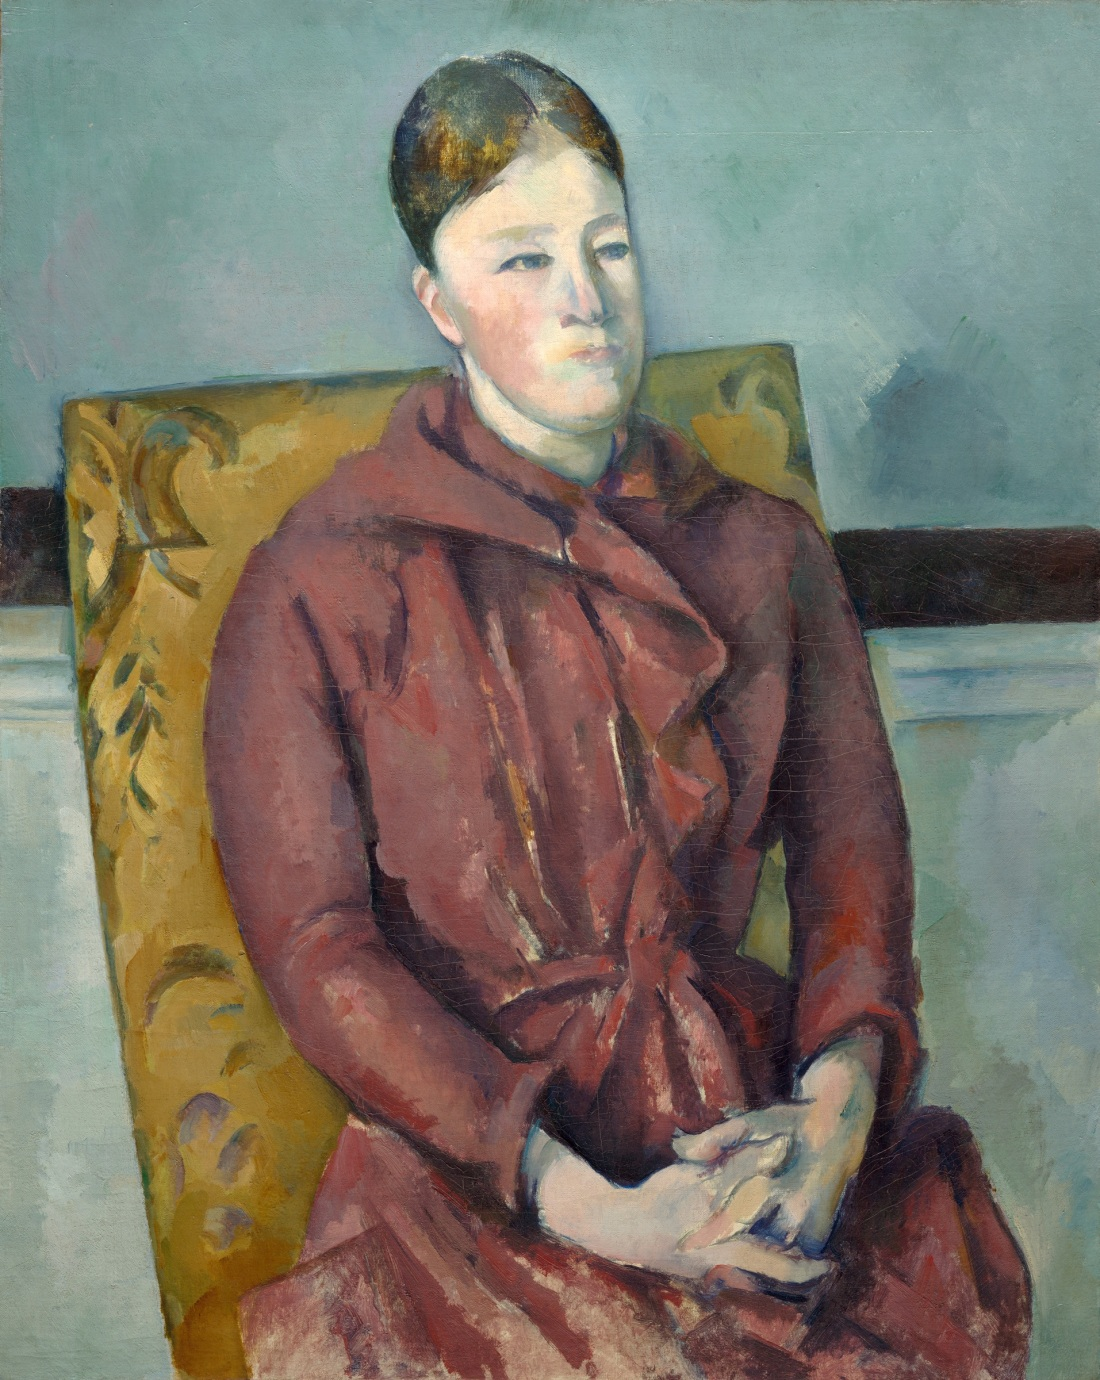 Paul Cezanne, Madame Cezanne in a Yellow Chair, ca. 1888-90. Collection of the Art Institute of Chicago.